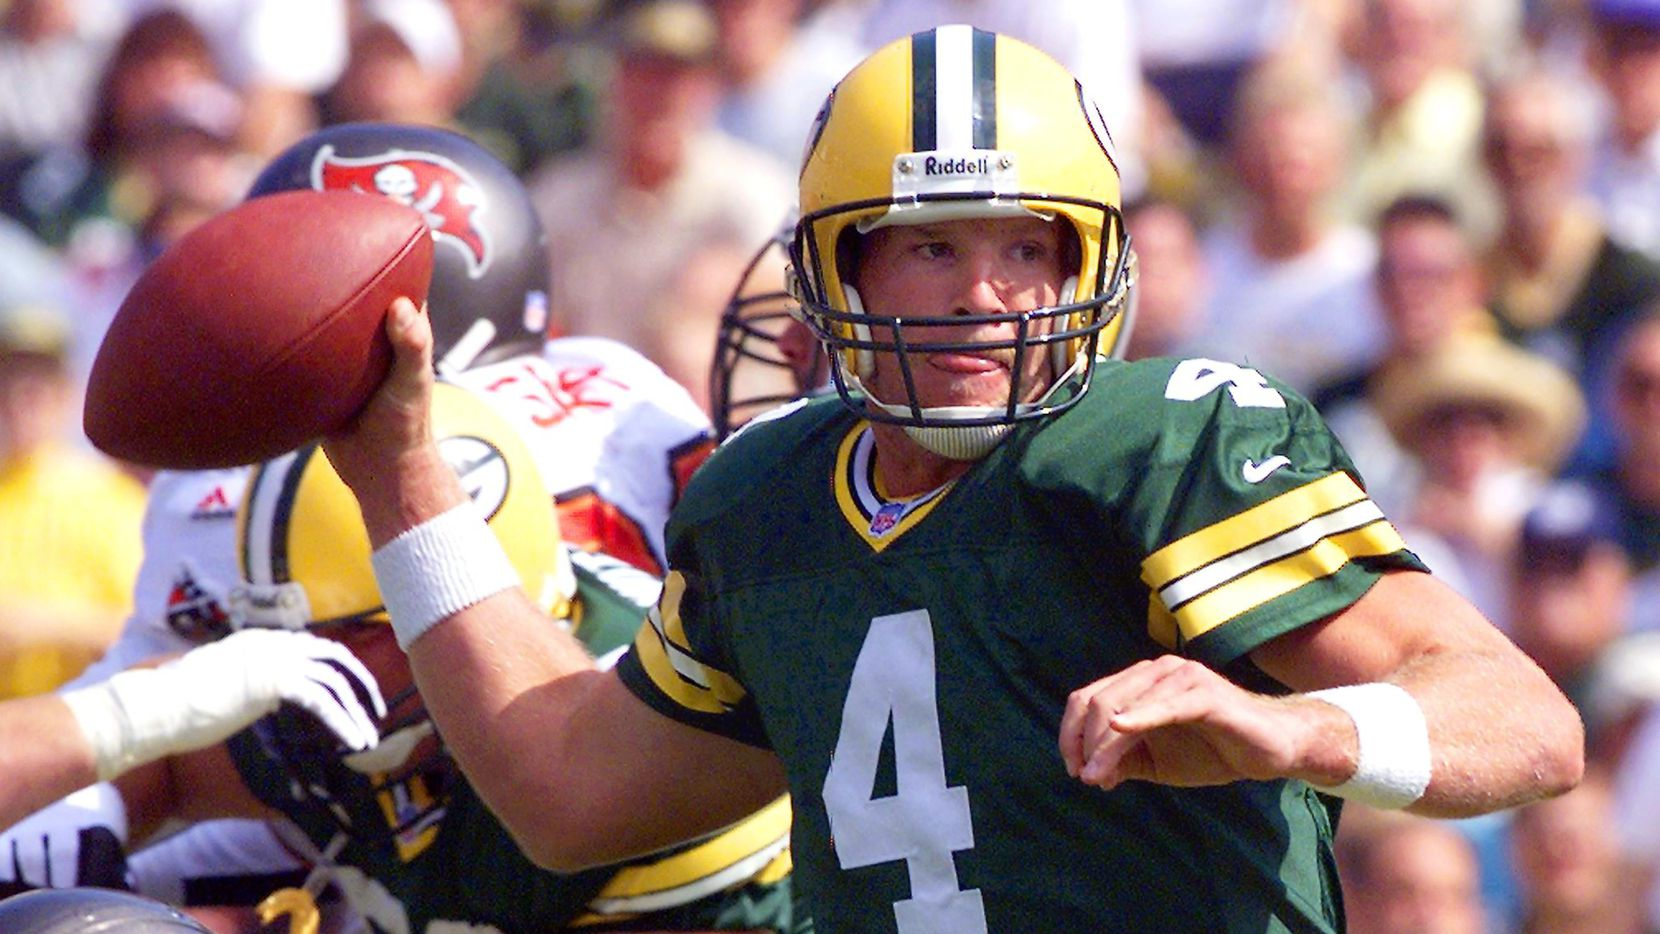 FILE: In this September 13, 1998 file photo, quarterback Brett Favre of the Green Bay Packers throws under pressure against the Tampa Bay Buccaneers during the first half of their game at Lambeau Field, in Green Bay, Wisconsin.